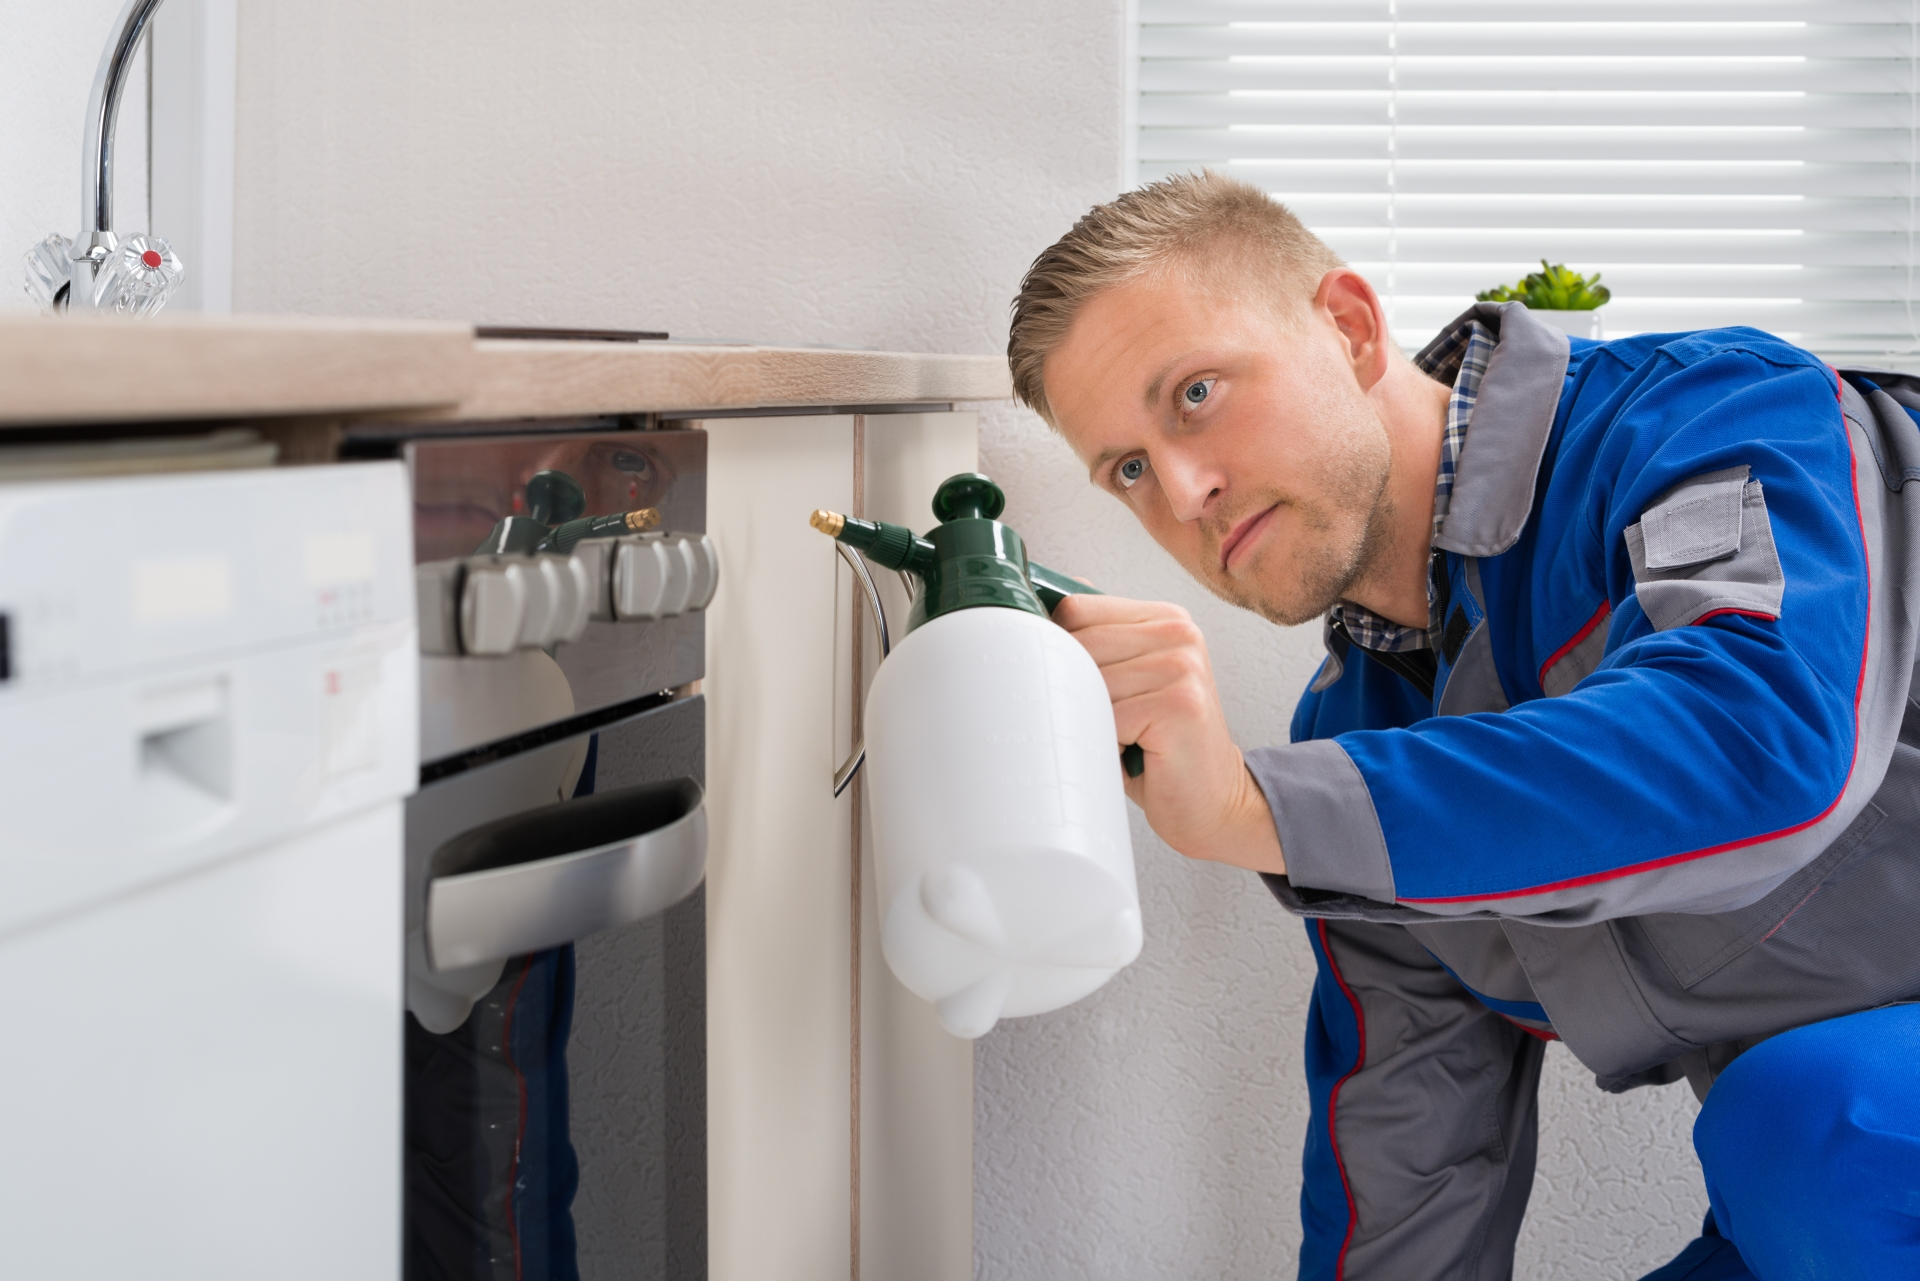 Pest Inspection, Pest Control in Crystal Palace, Upper Norwood, SE19. Call Now 020 8166 9746